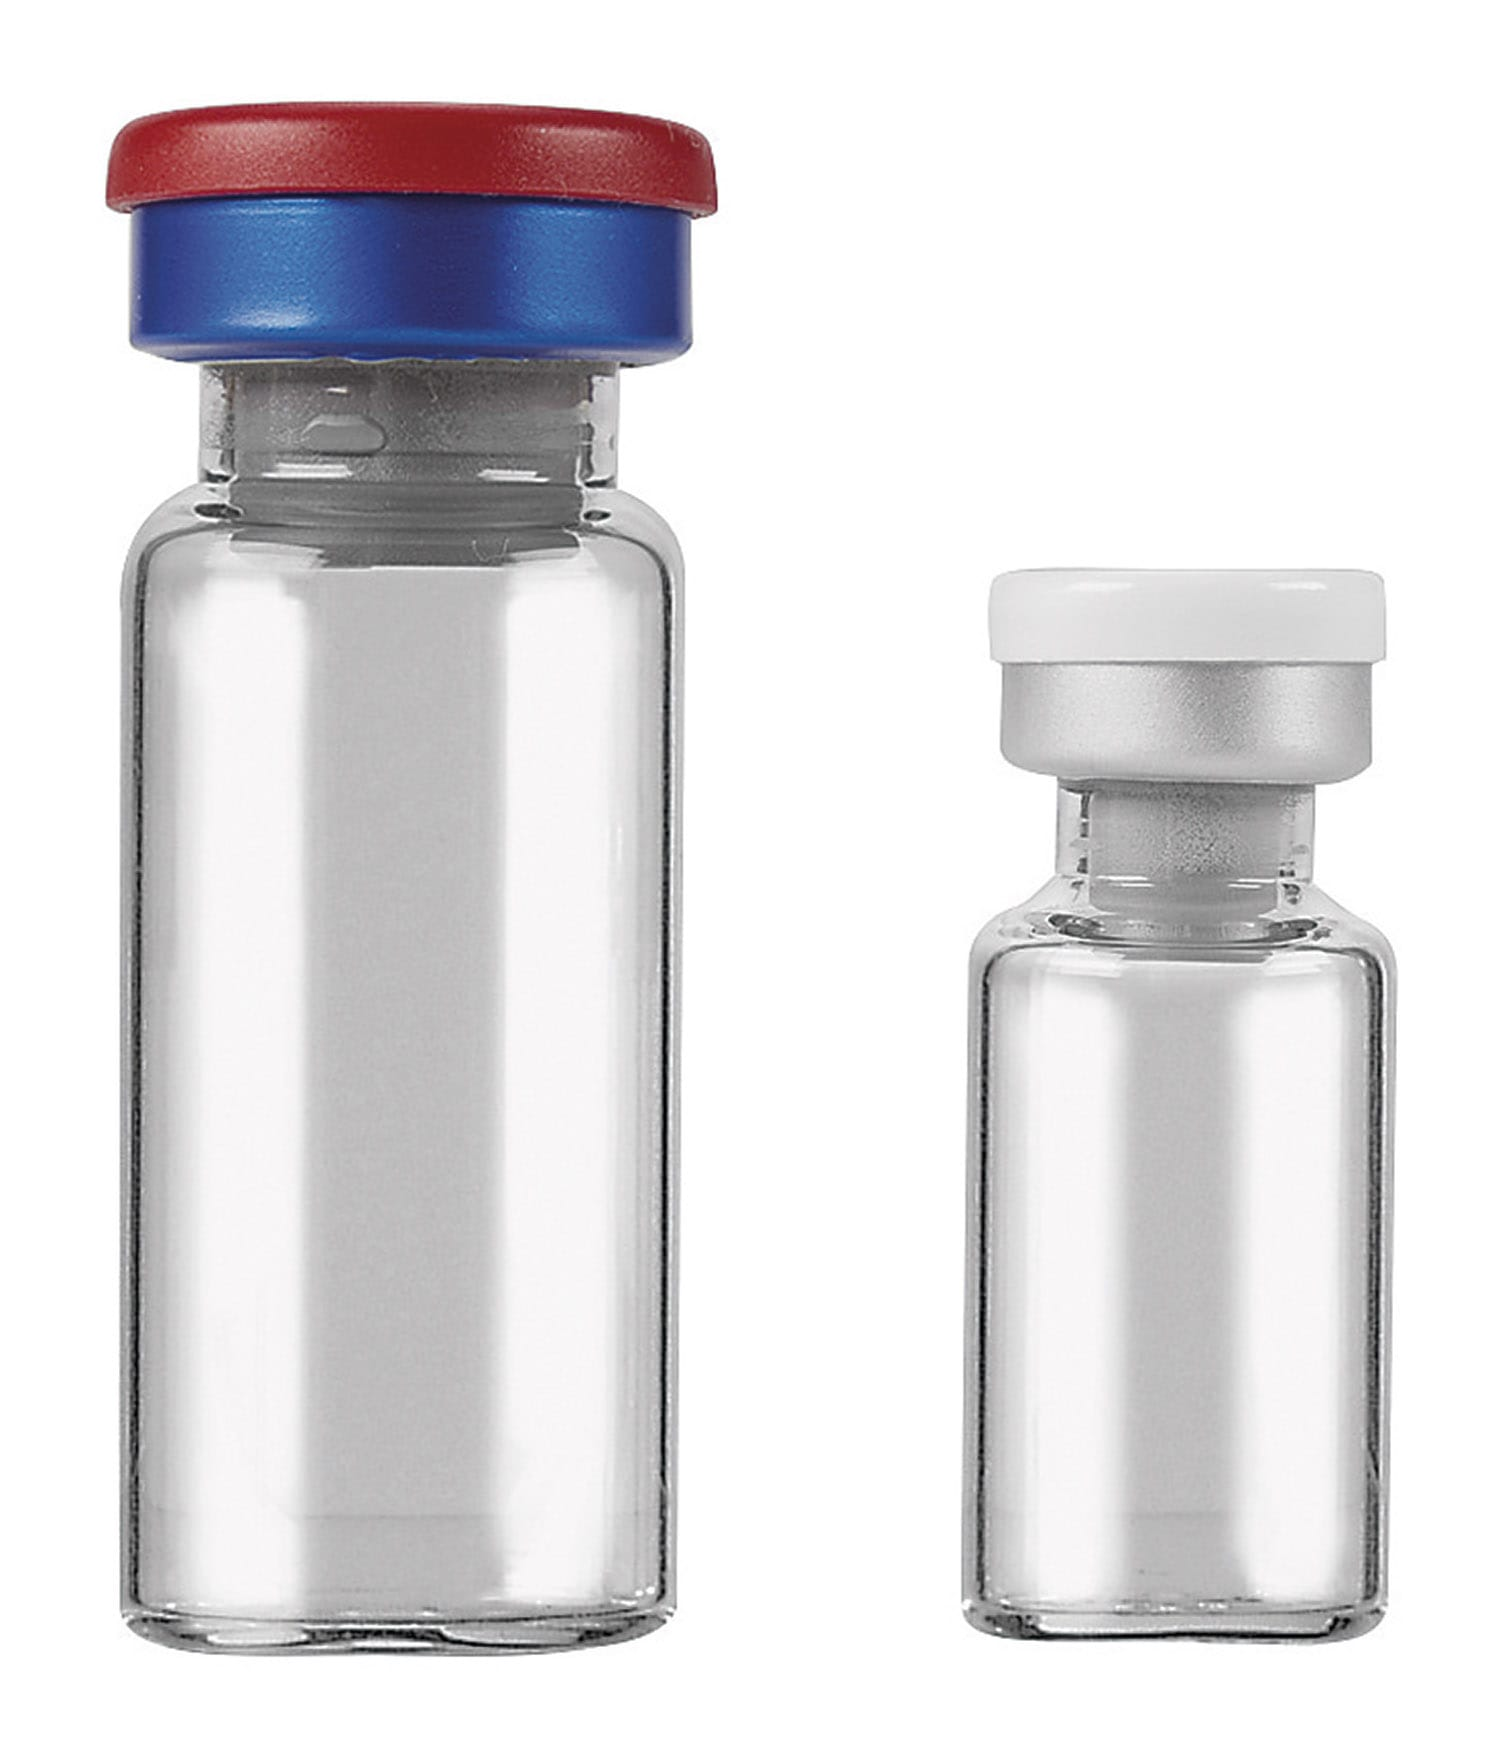 Sterile Glass Vials in 10ml and 2ml sizes